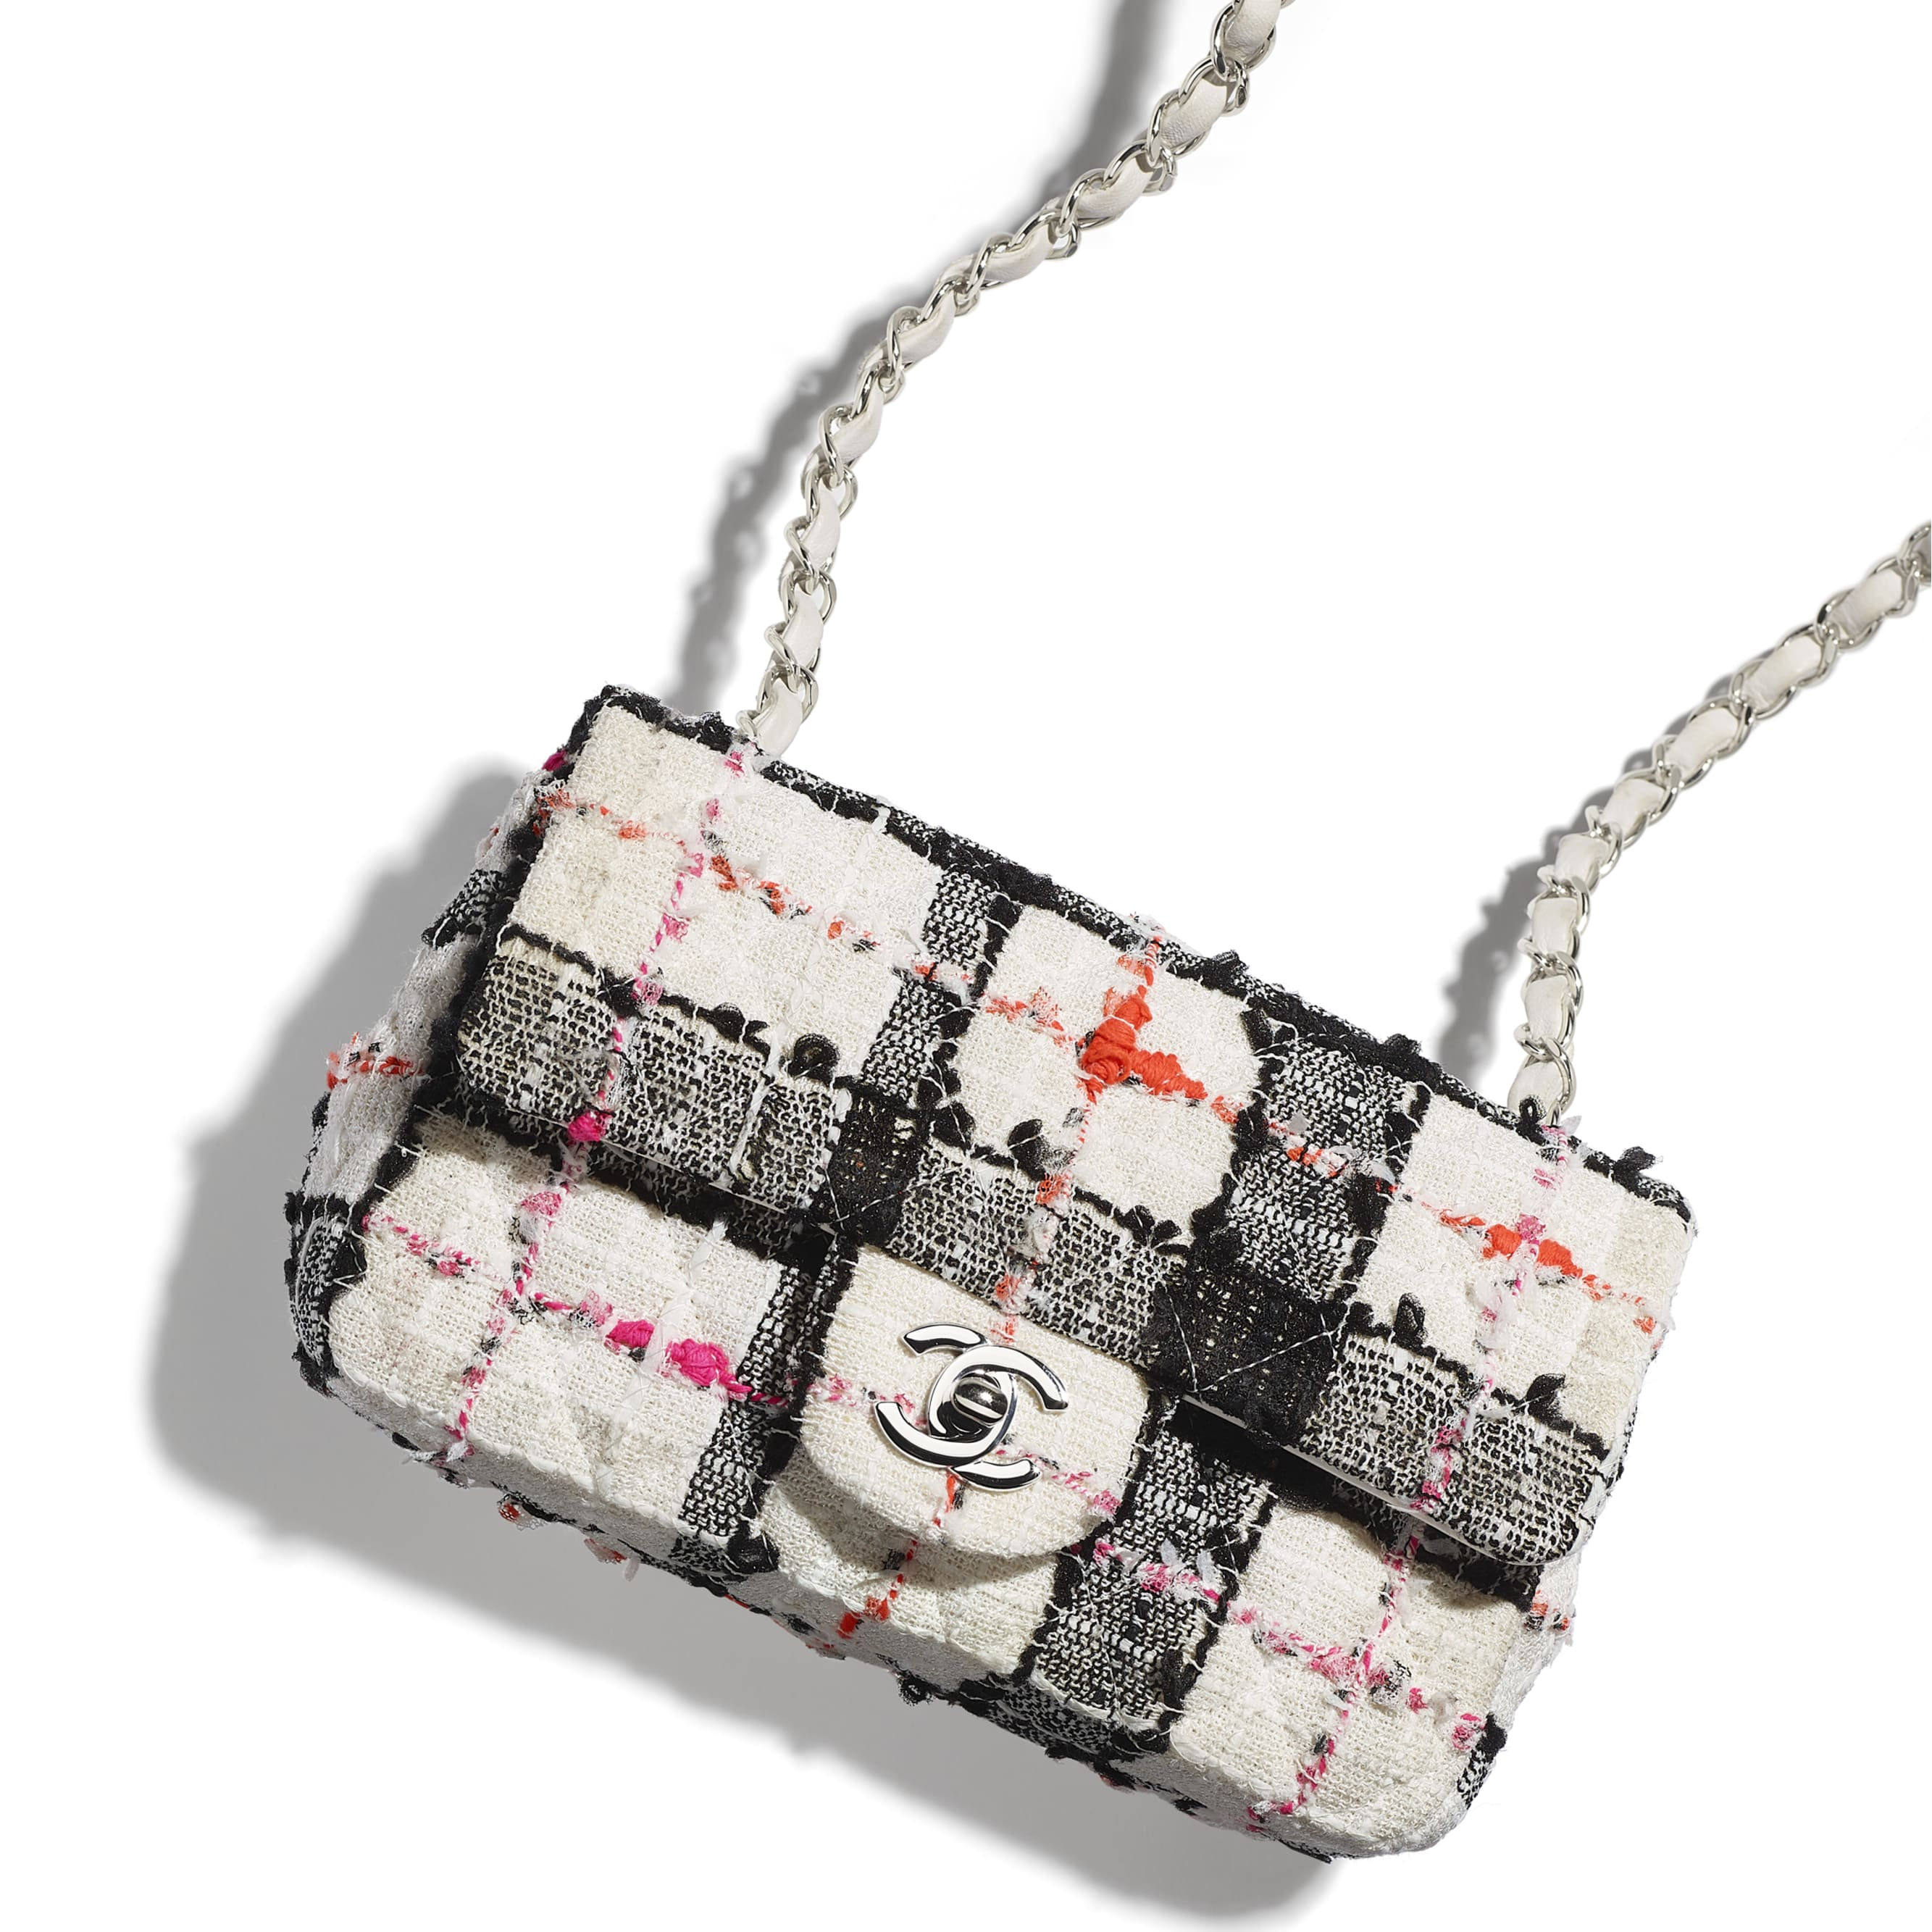 Mini Flap Bag - White, Black, Pink & Orange - Tweed & Silver-Tone Metal - Extra view - see standard sized version